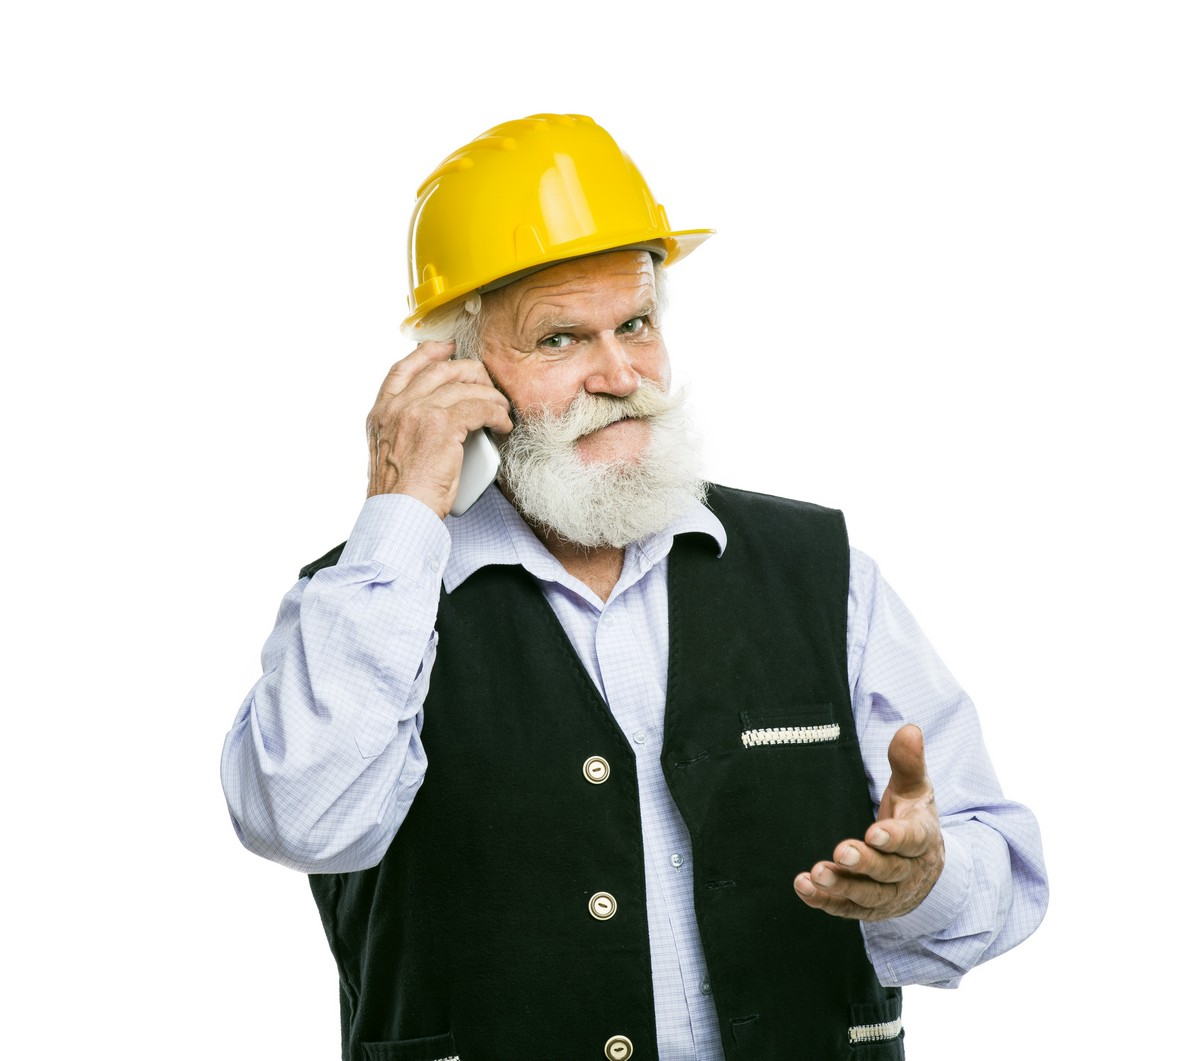 senior-plumber-with-yellow-helmet-calling-on-the-phone